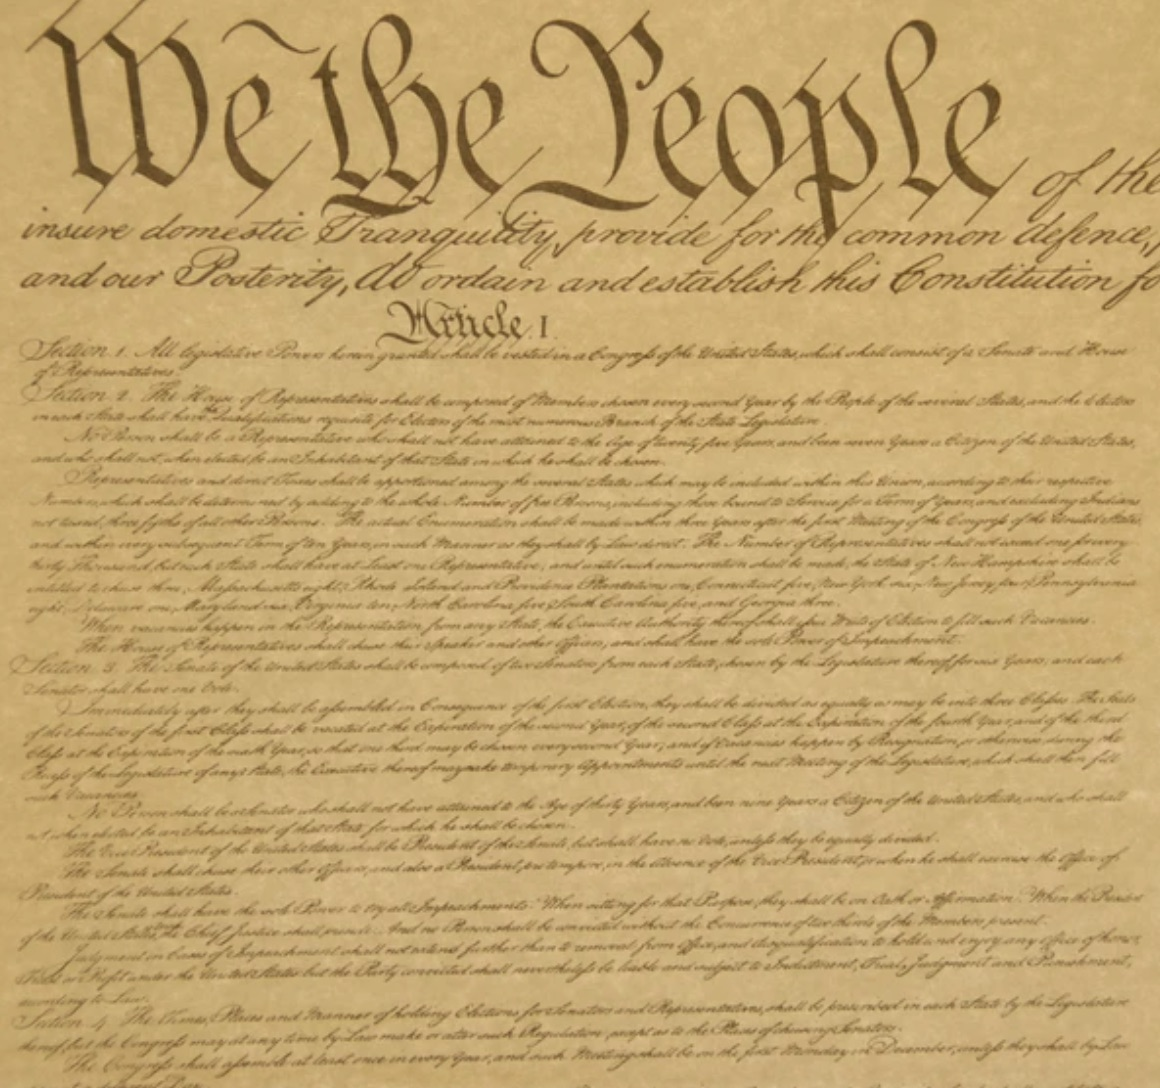 A reproduction of the beginning of the US Constitution